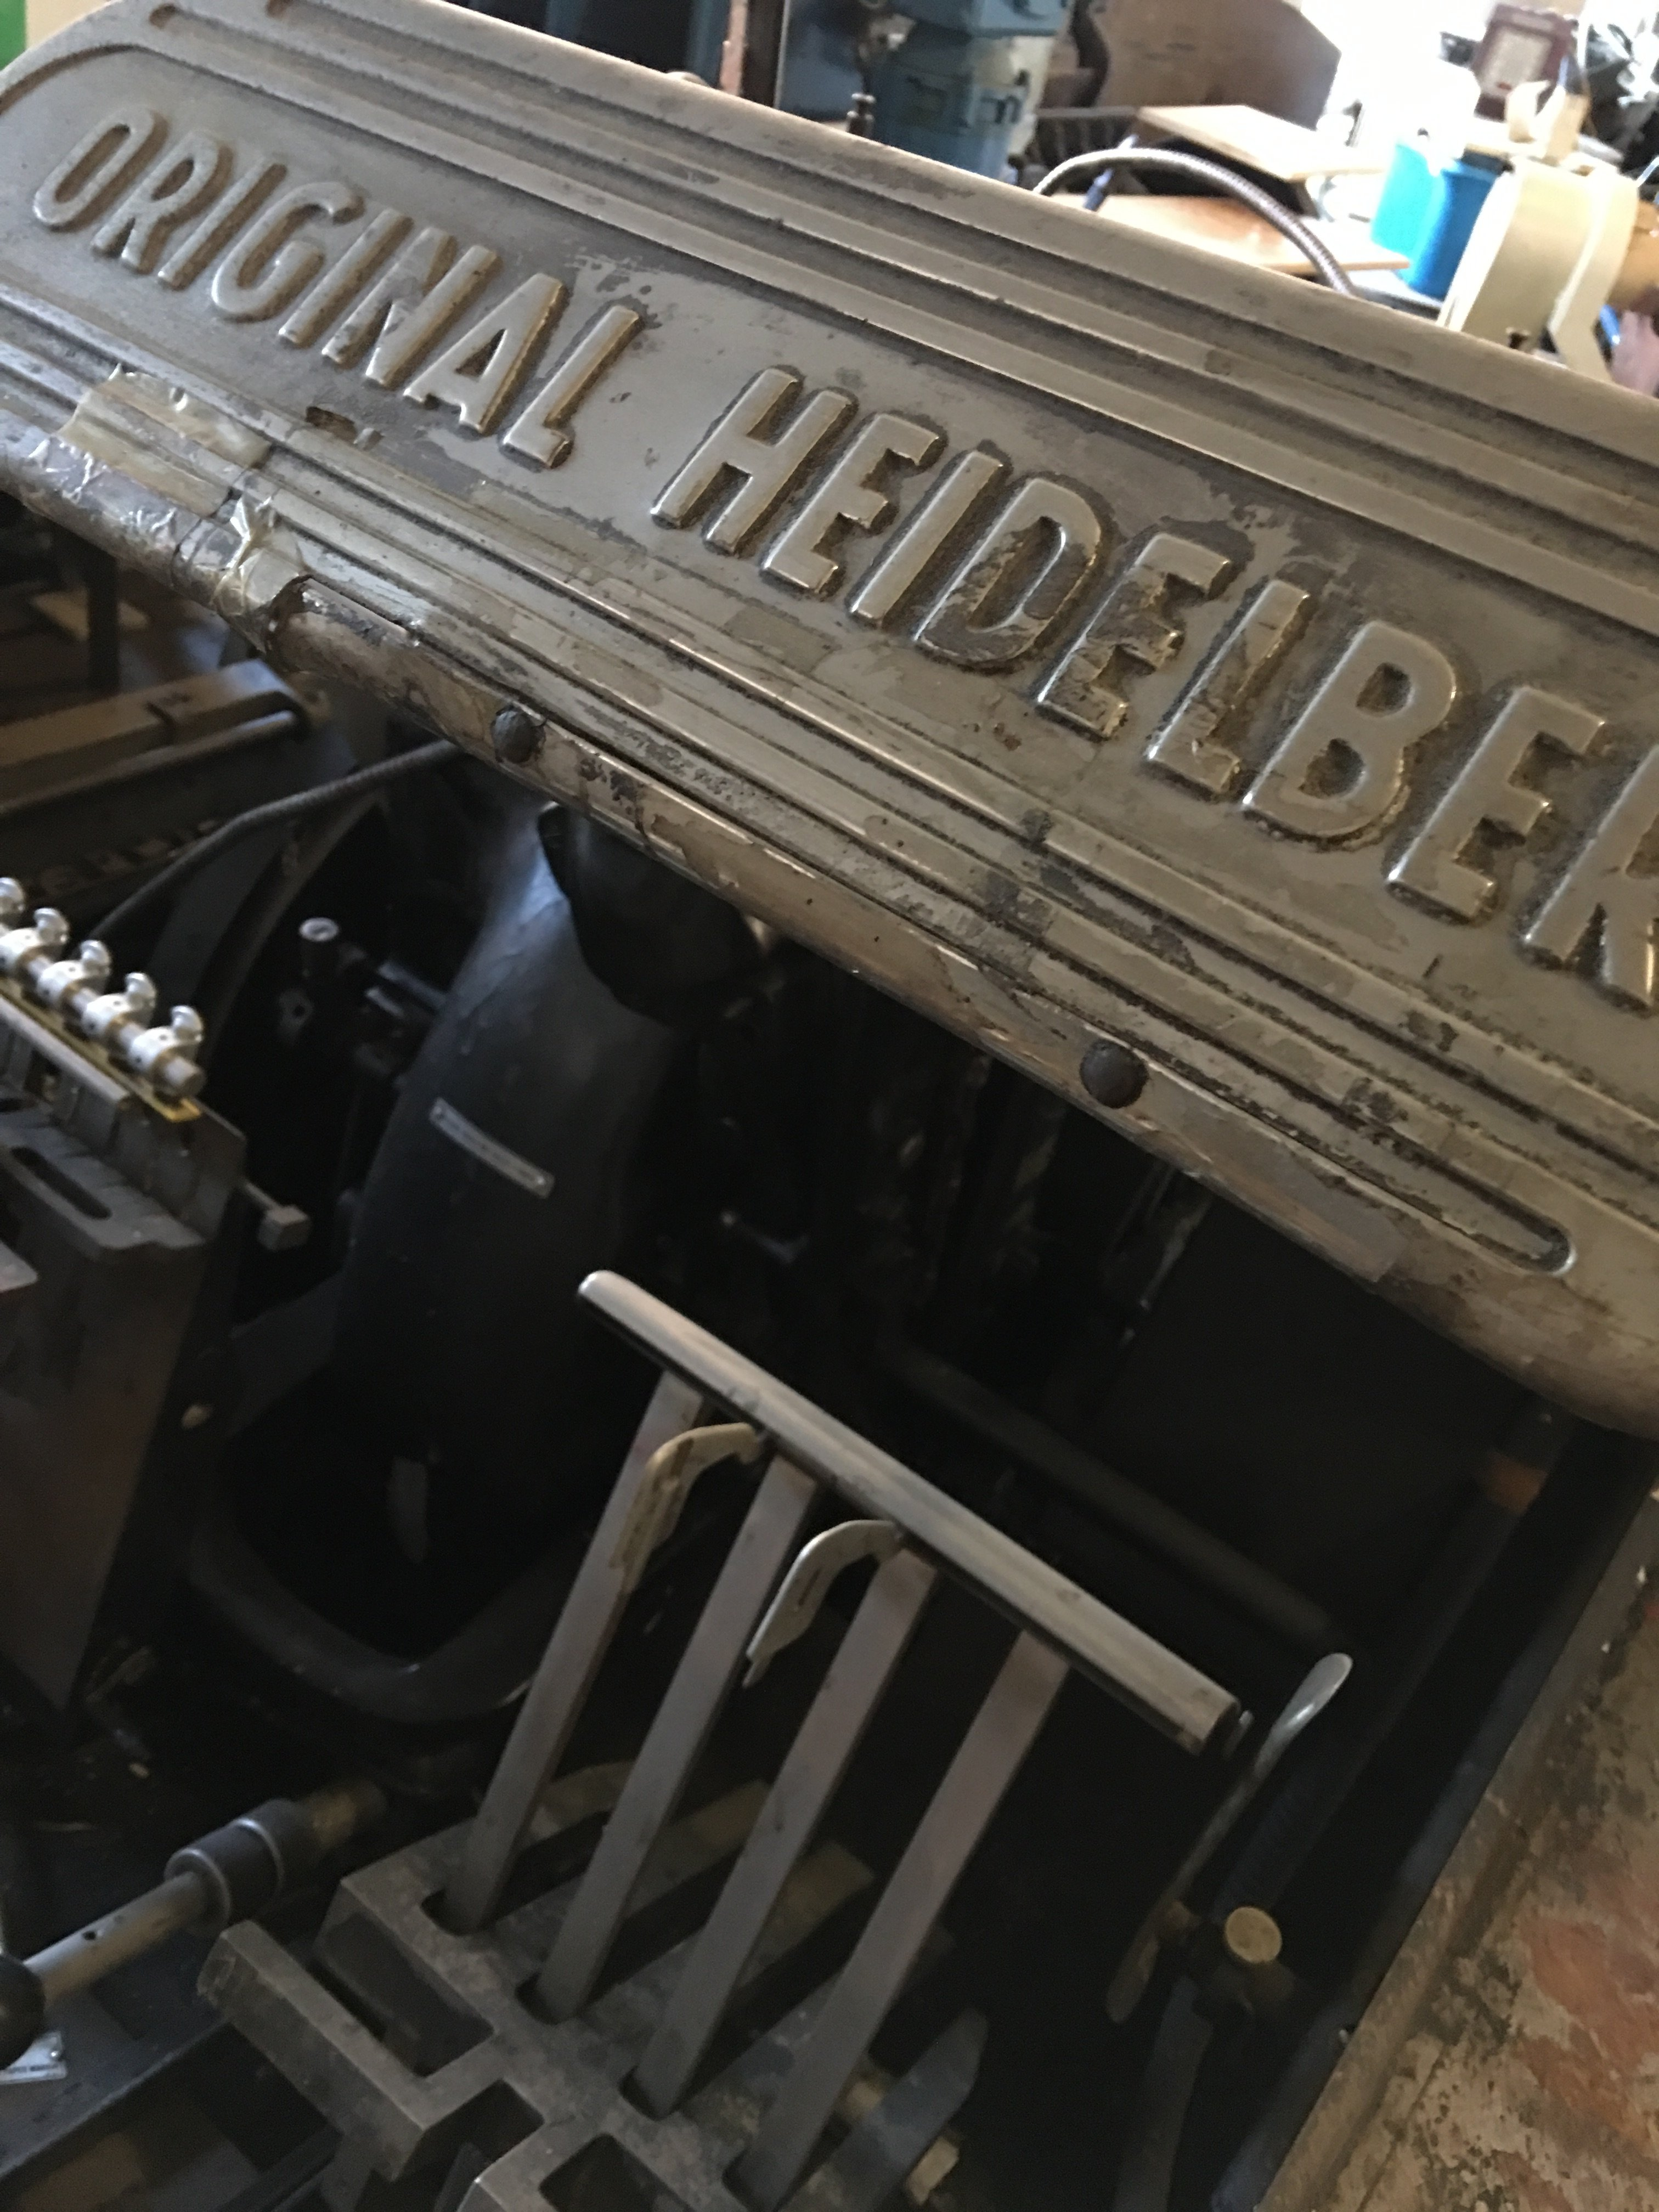 Tilting at Windmills…How to find, buy, move, and restore a Heidelberg Windmill